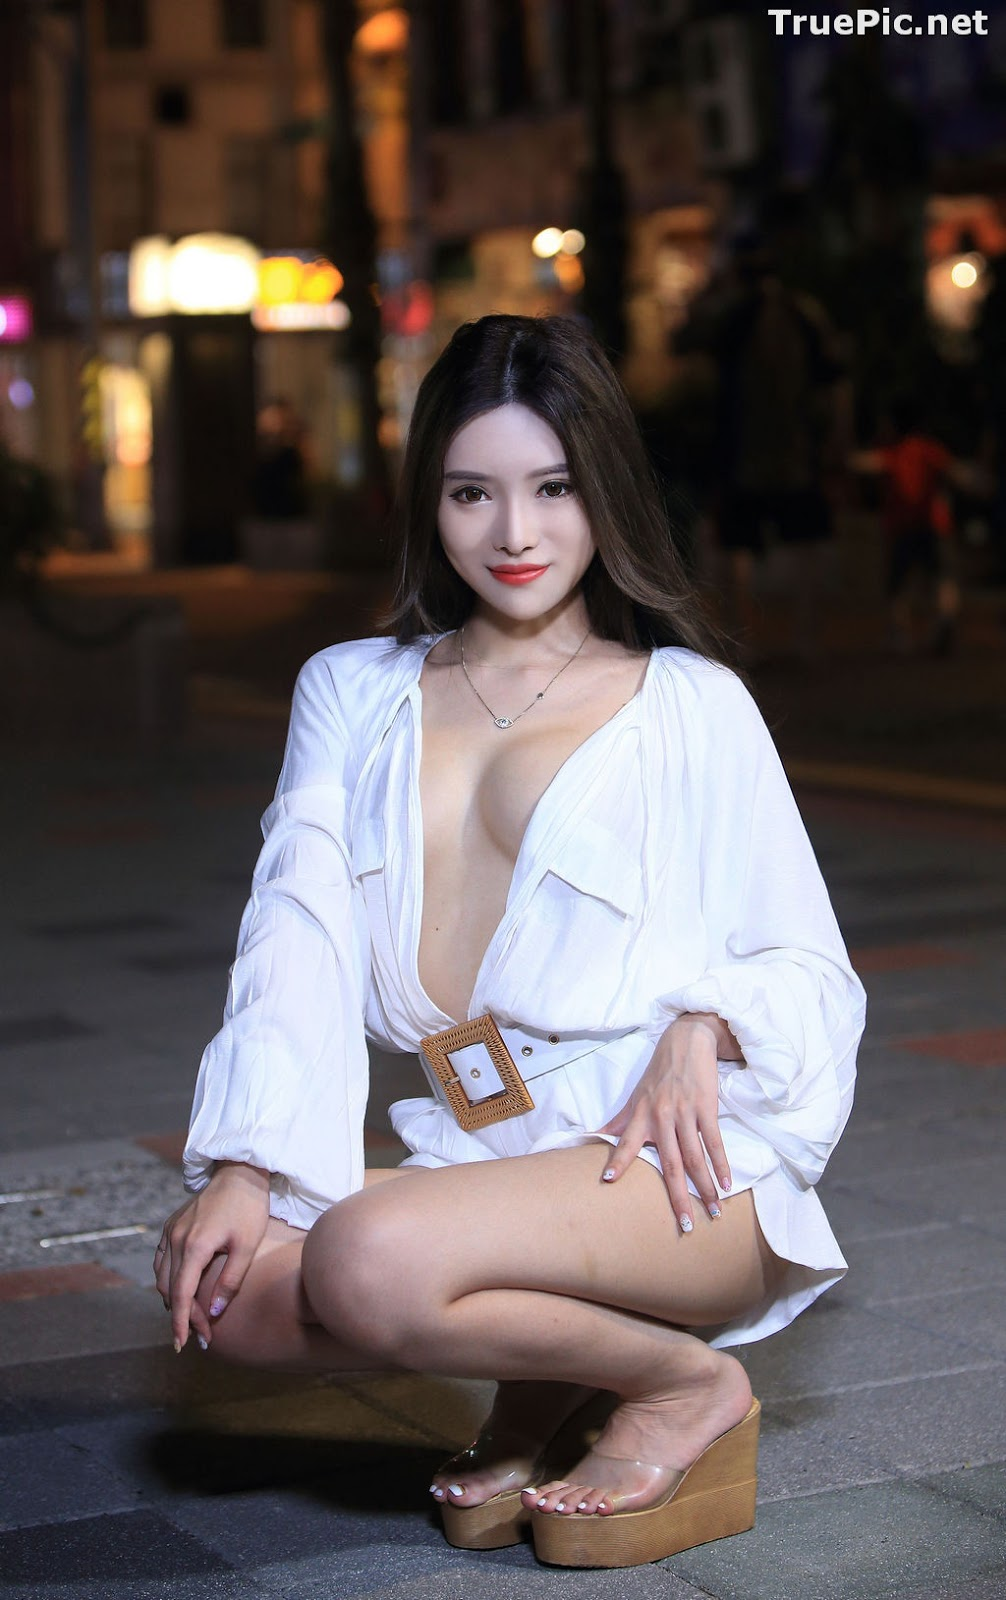 Image Taiwanese Model – 莊舒潔 (ViVi) – Sexy and Pure Baby In Night - TruePic.net - Picture-14